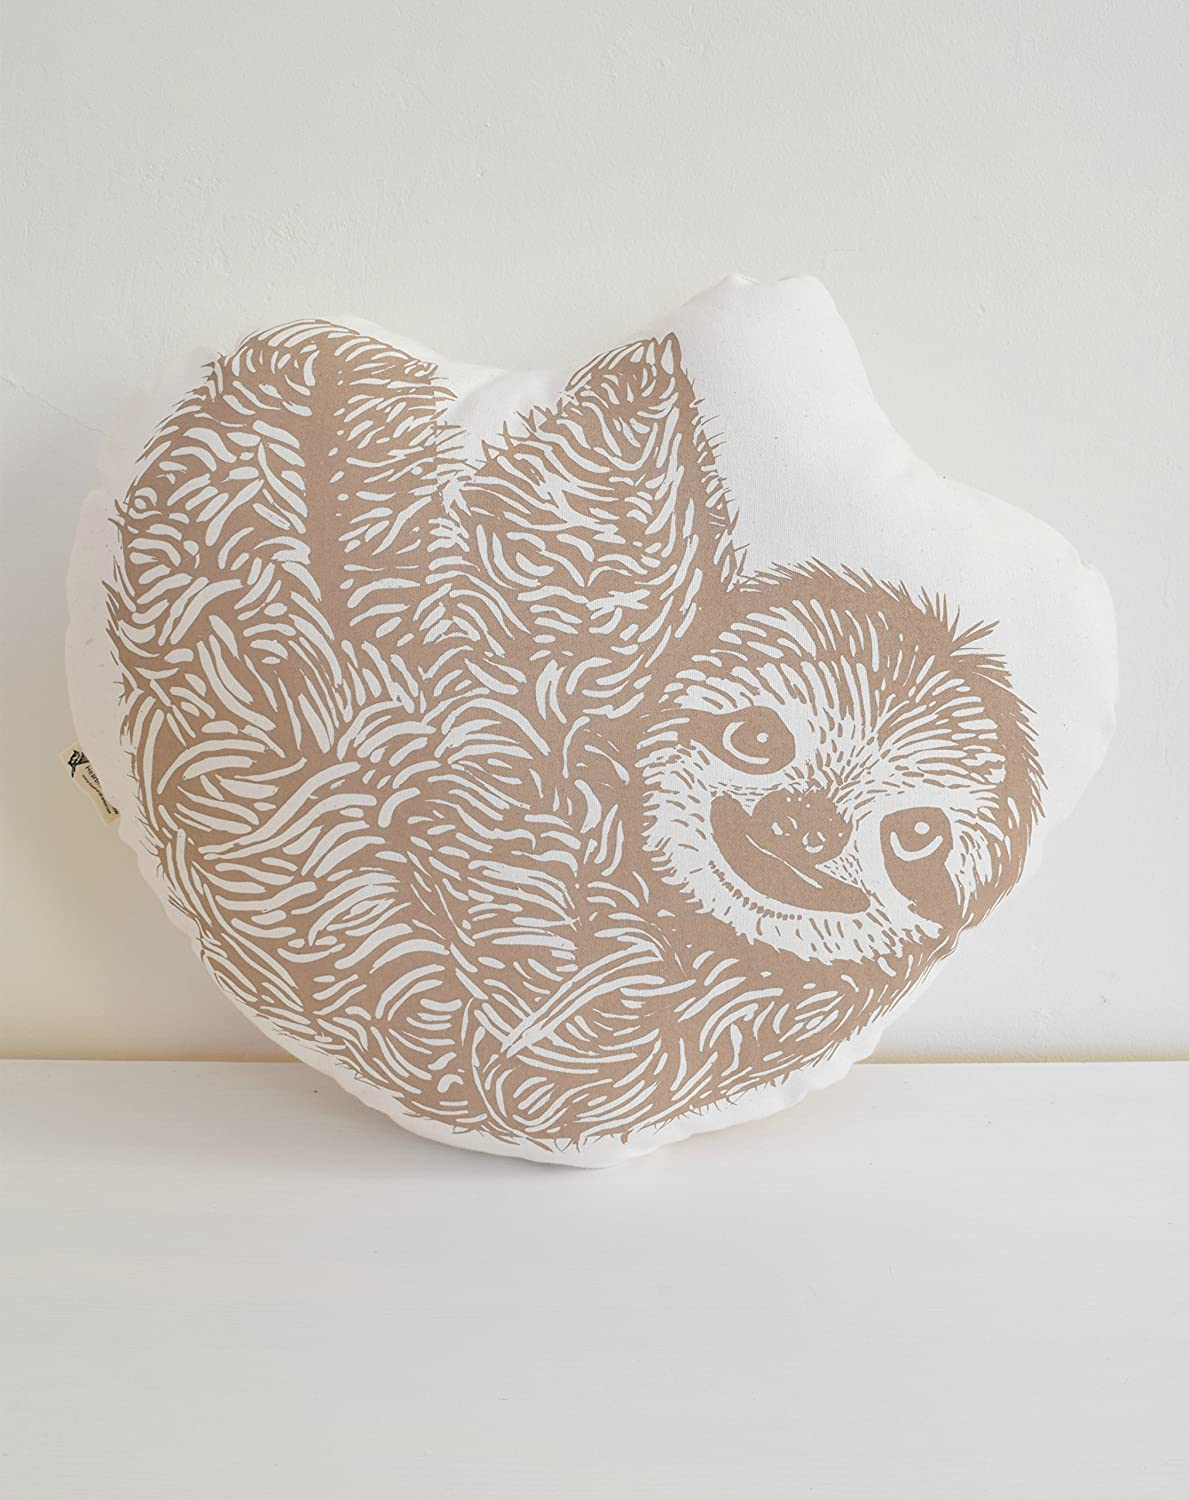 Large Sloth Pillow - Hand Printed in Mocha Brown - Hand Sewn - Organic